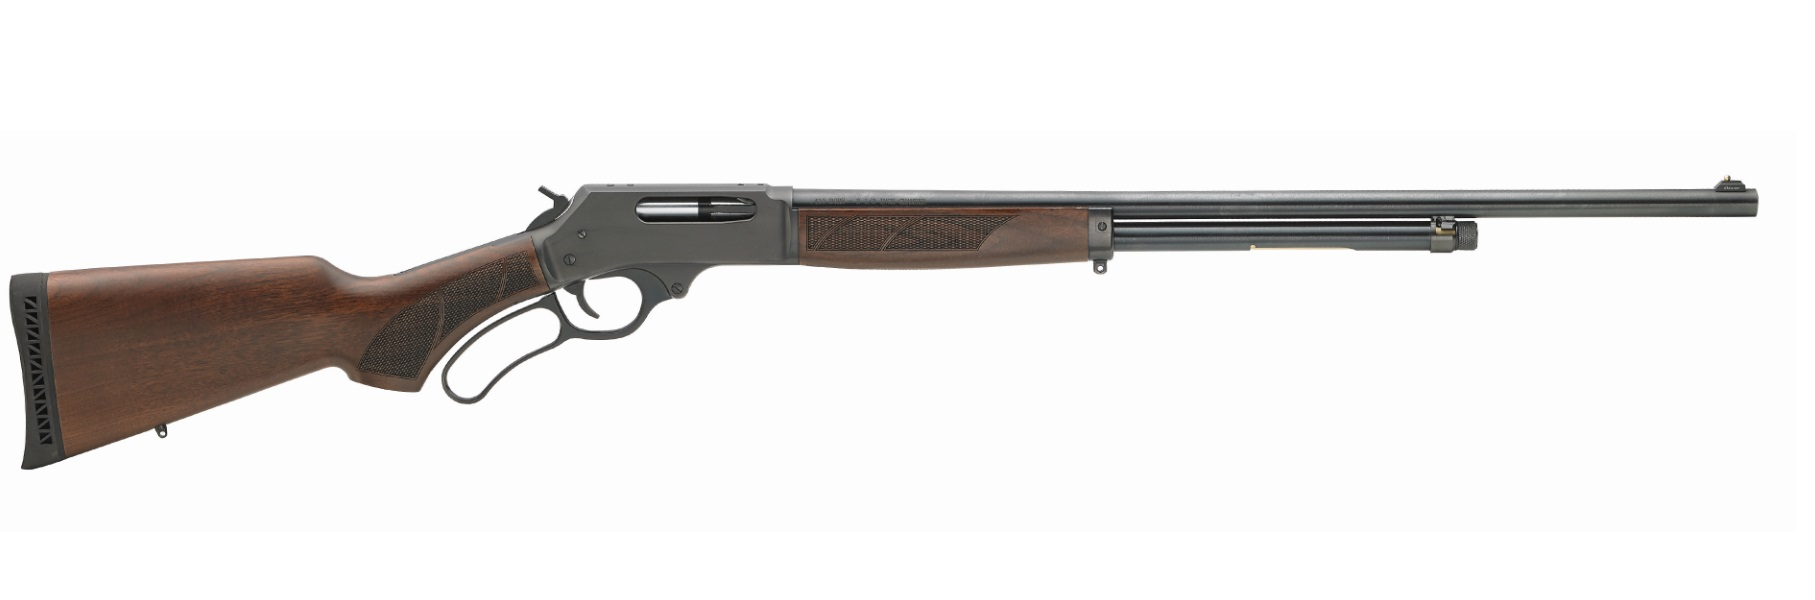 Henry Repeating Arms LEVER ACTION SHOTGUN 410 BORE